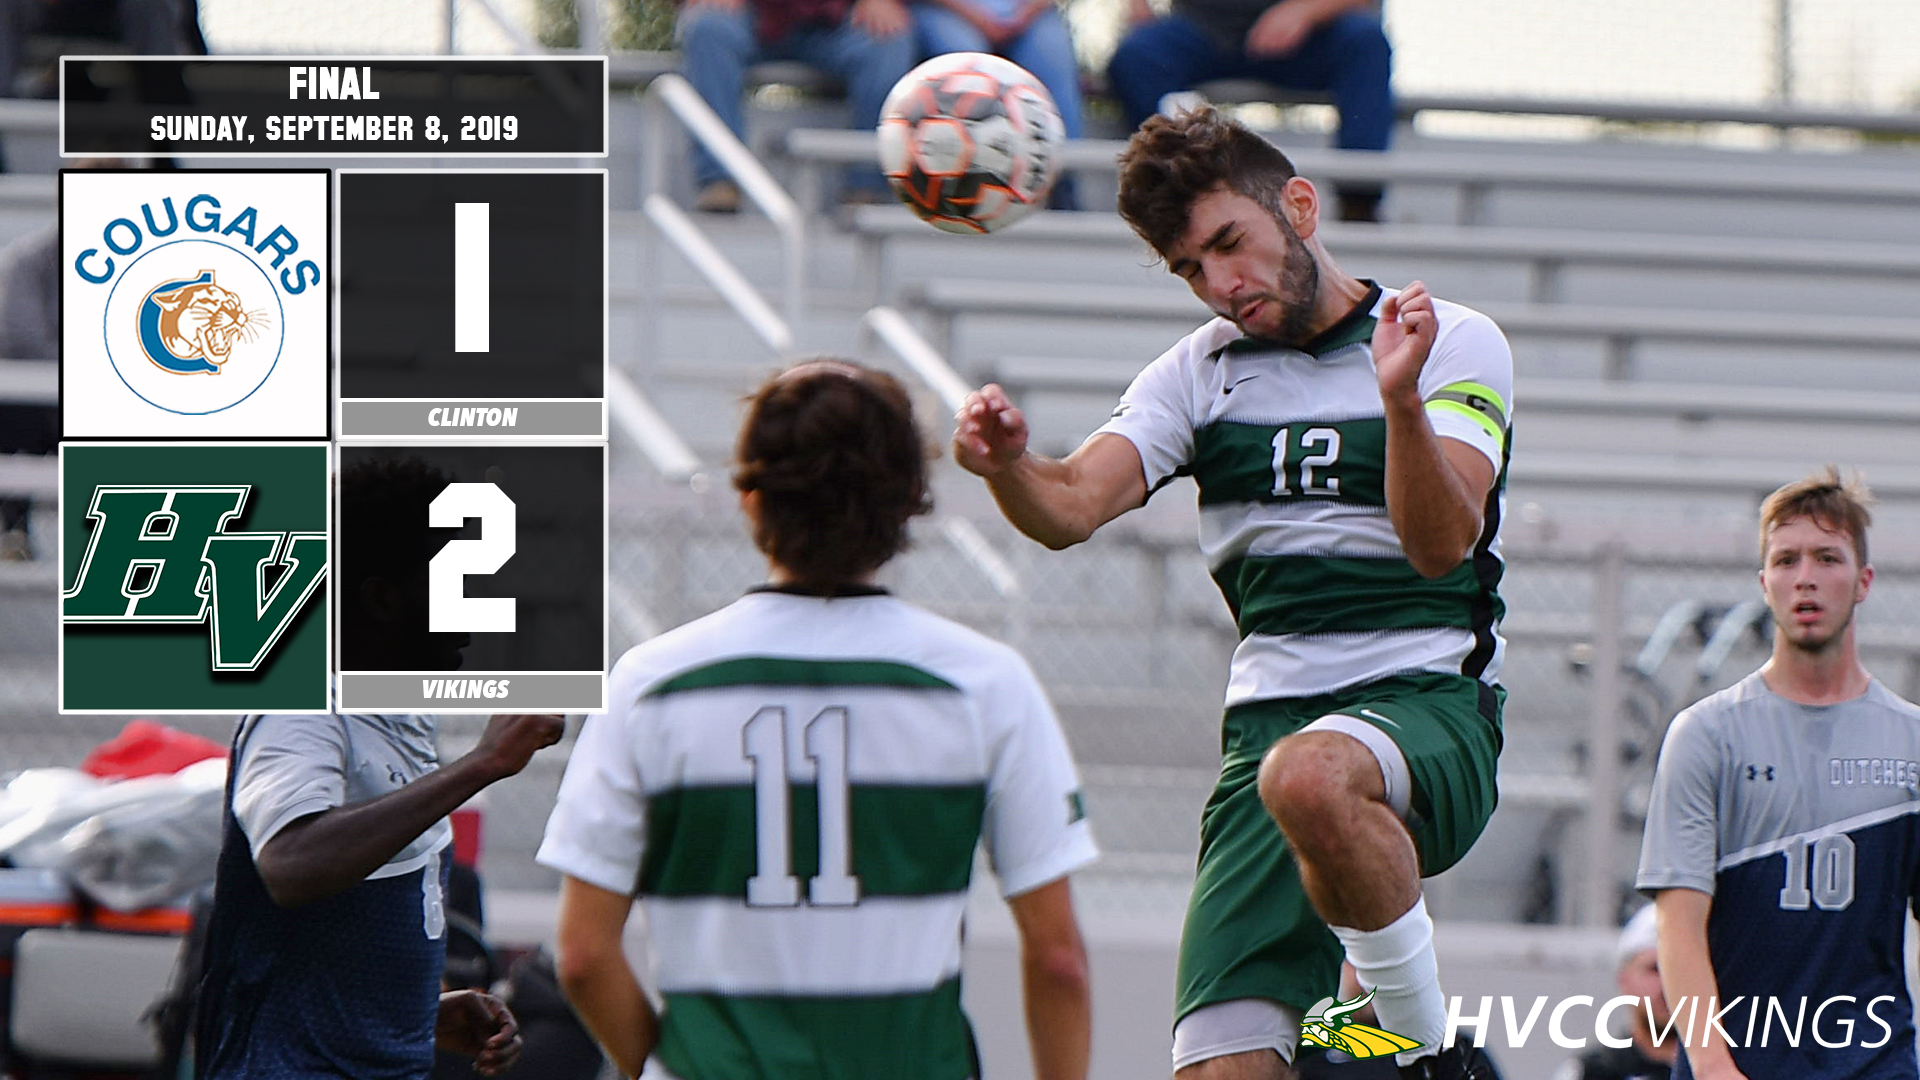 Men's soccer defeats Clinton 2-1 (Action photo)